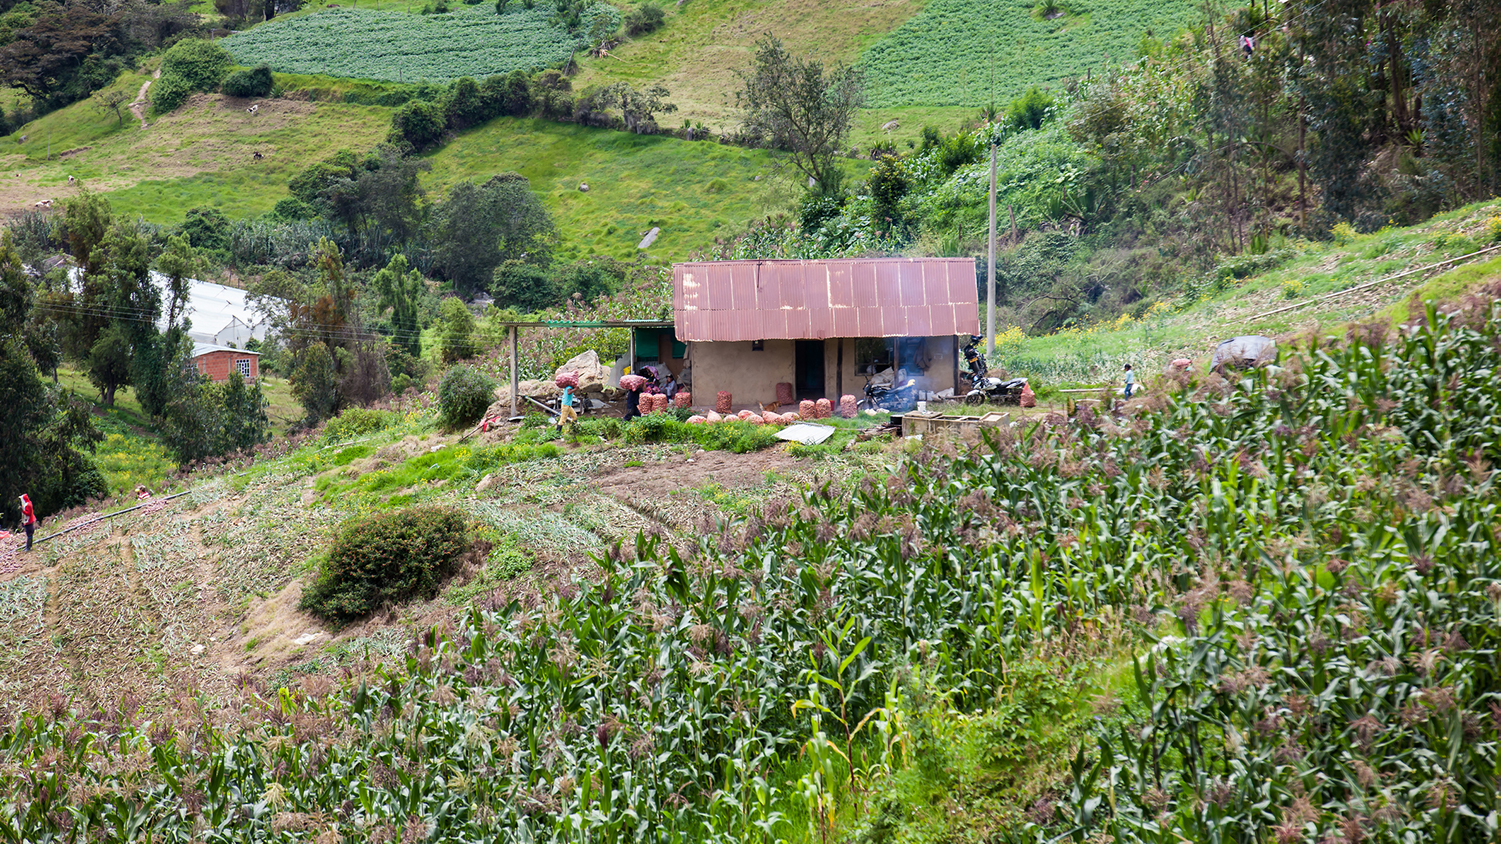 a small farm in the mountains of Colombia